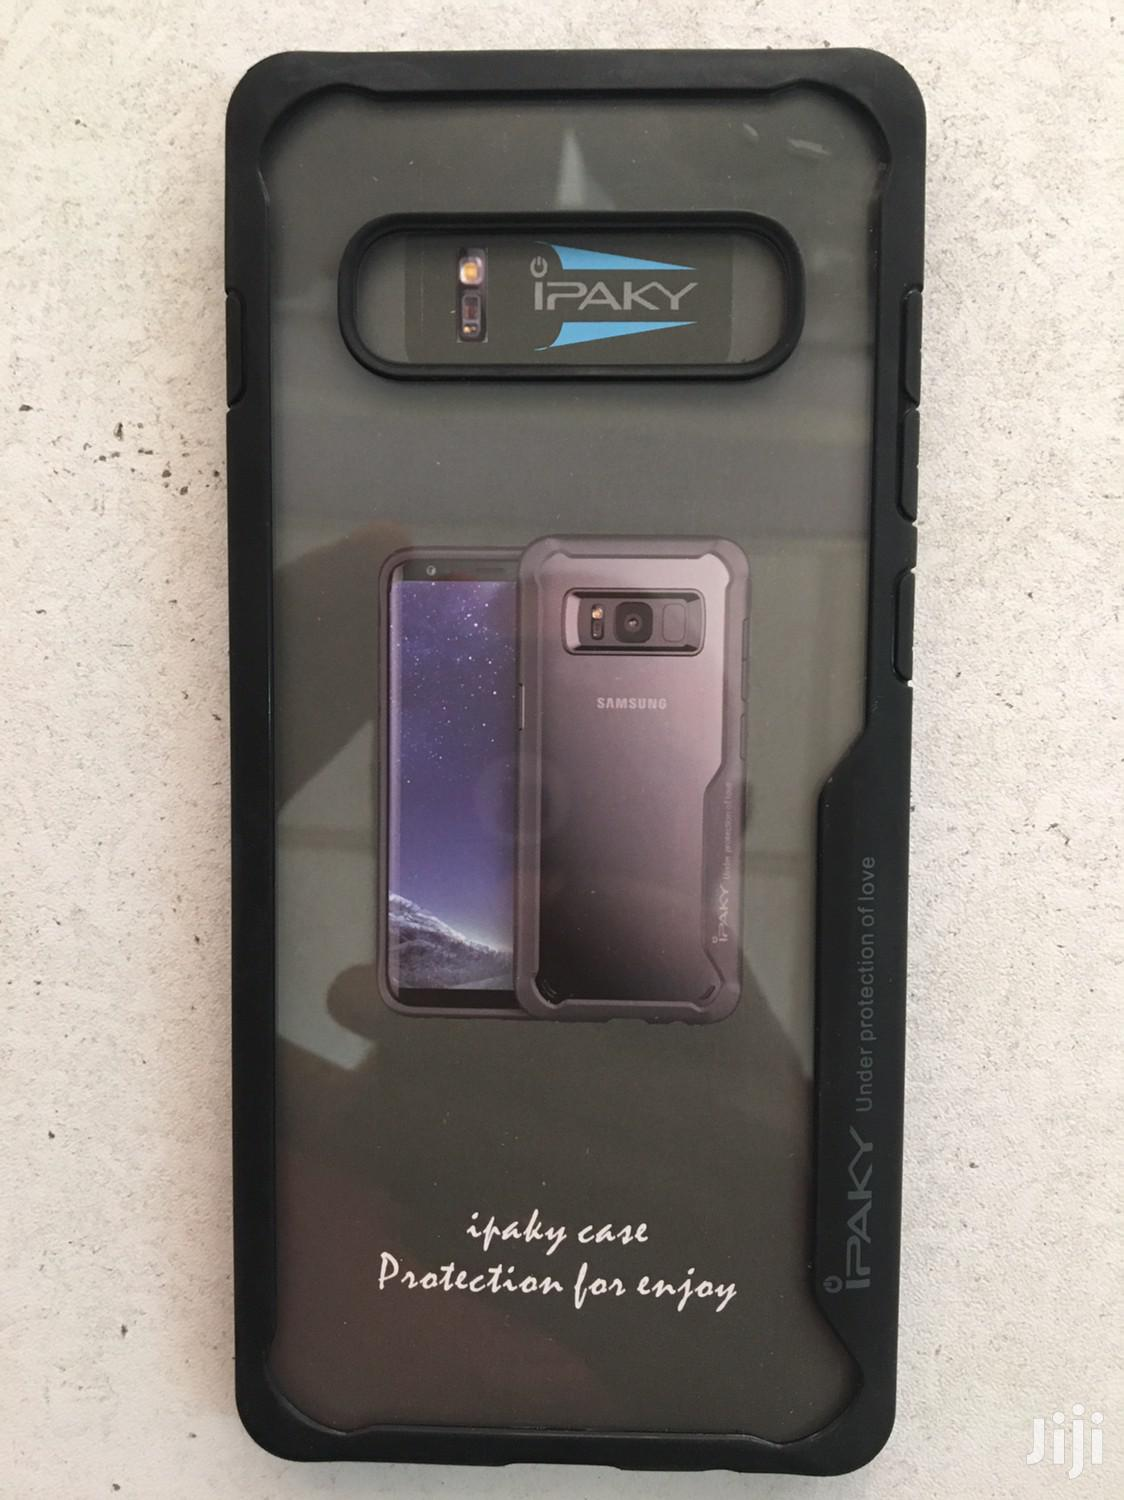 S10 Plus Ipaky Heavy Duty Case Cover | Accessories for Mobile Phones & Tablets for sale in Nairobi Central, Nairobi, Kenya